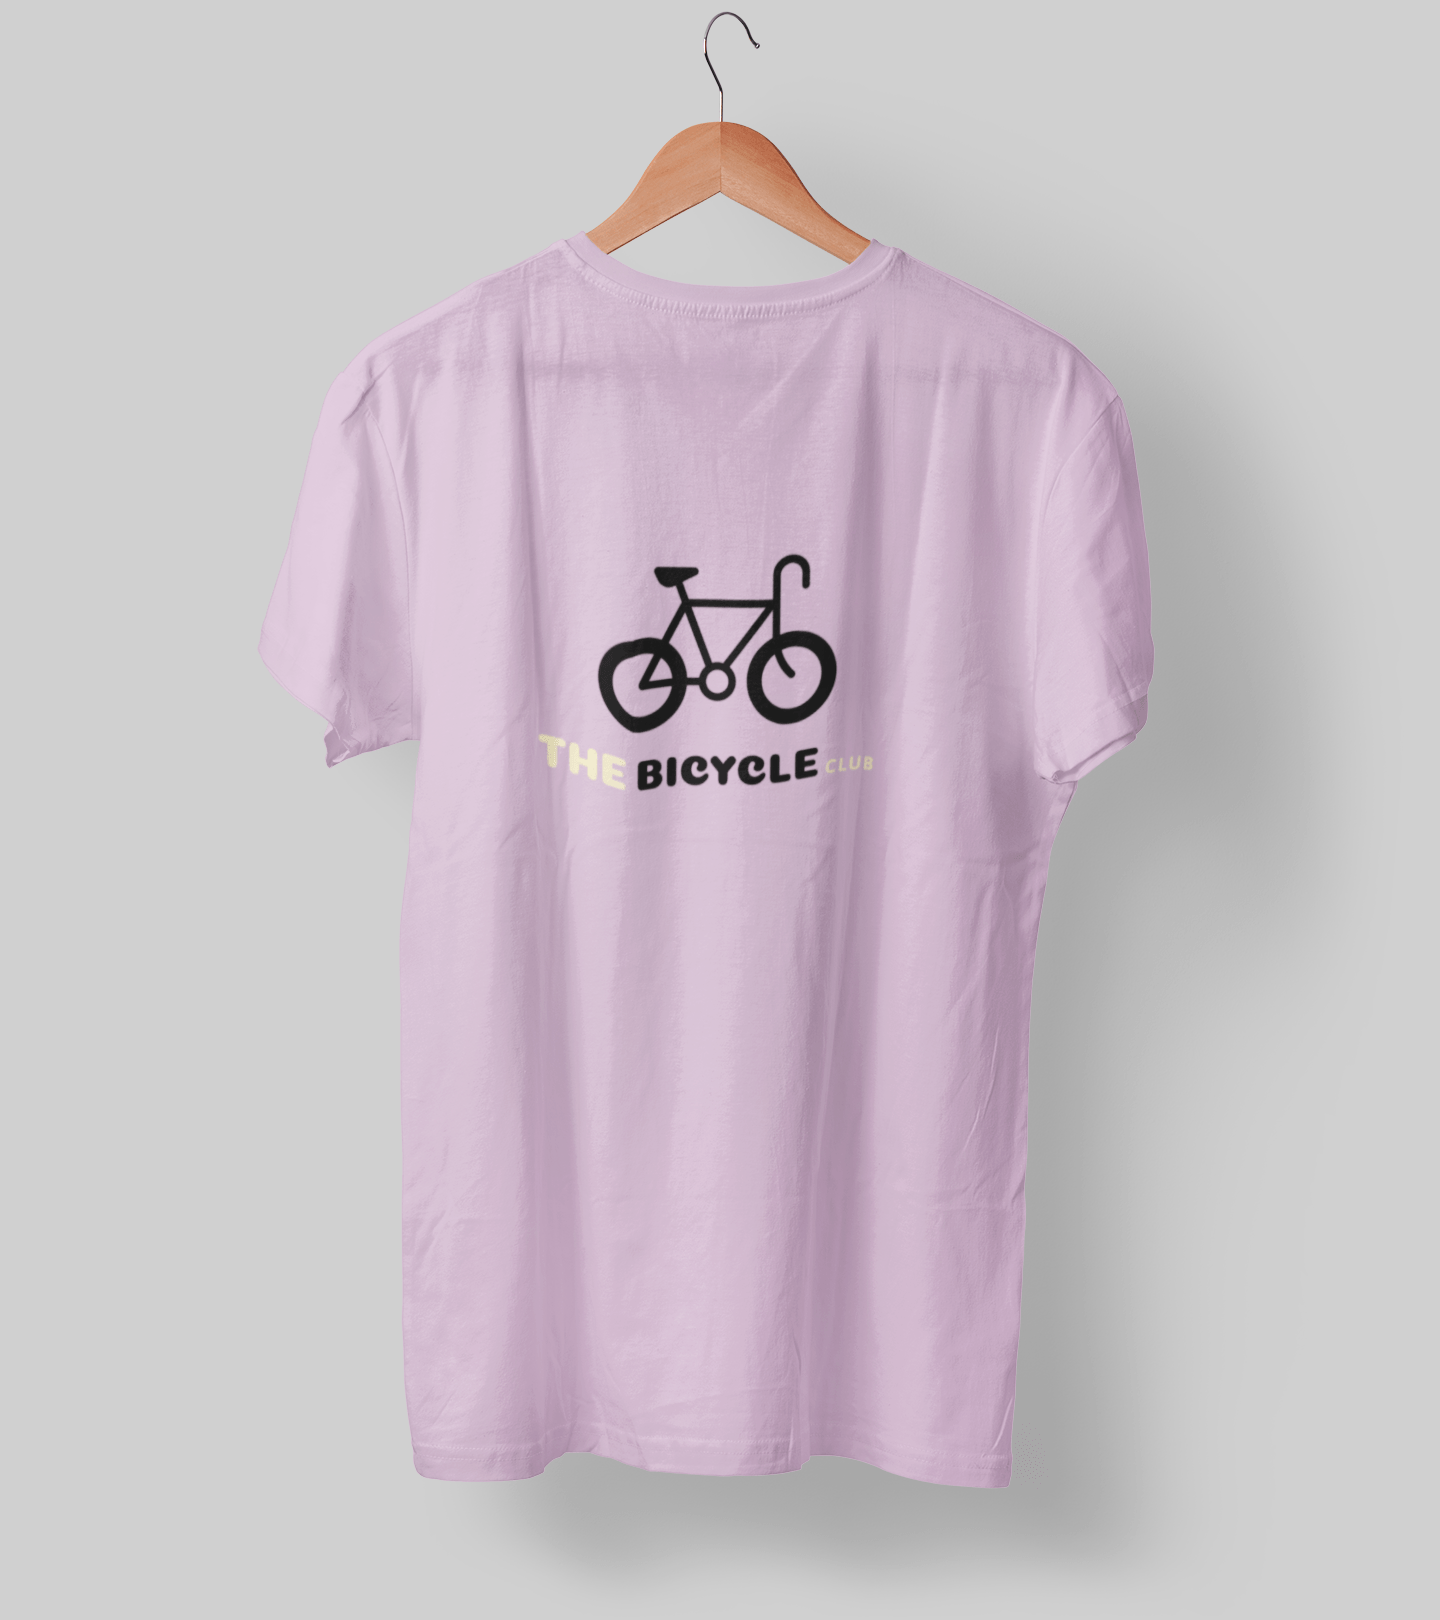 Bicycle Club Clothing Printrove Light Pink S